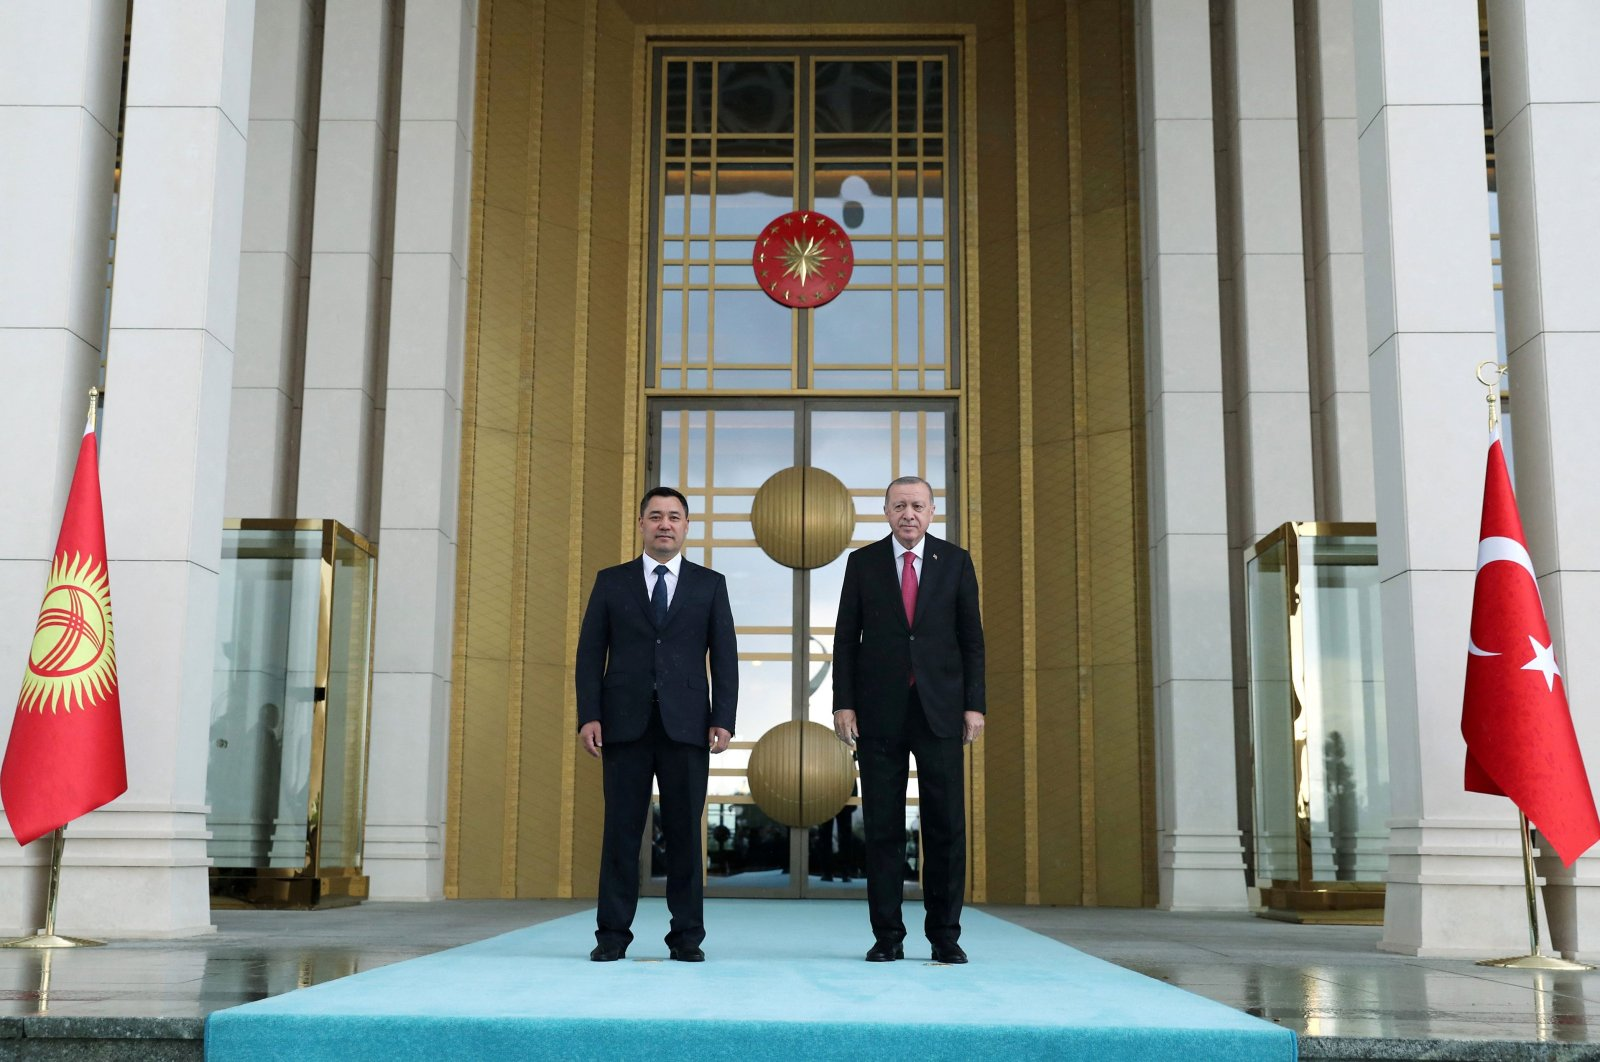 This handout picture released by the Turkish Presidential Press Service shows Turkish President Recep Tayyip Erdoğan (R) posing next to his Kyrgyz counterpart Sadyr Zhaparov (L) during an official ceremony at the Presidential Complex in Ankara, Turkey, June 9, 2021. (AFP Photo)